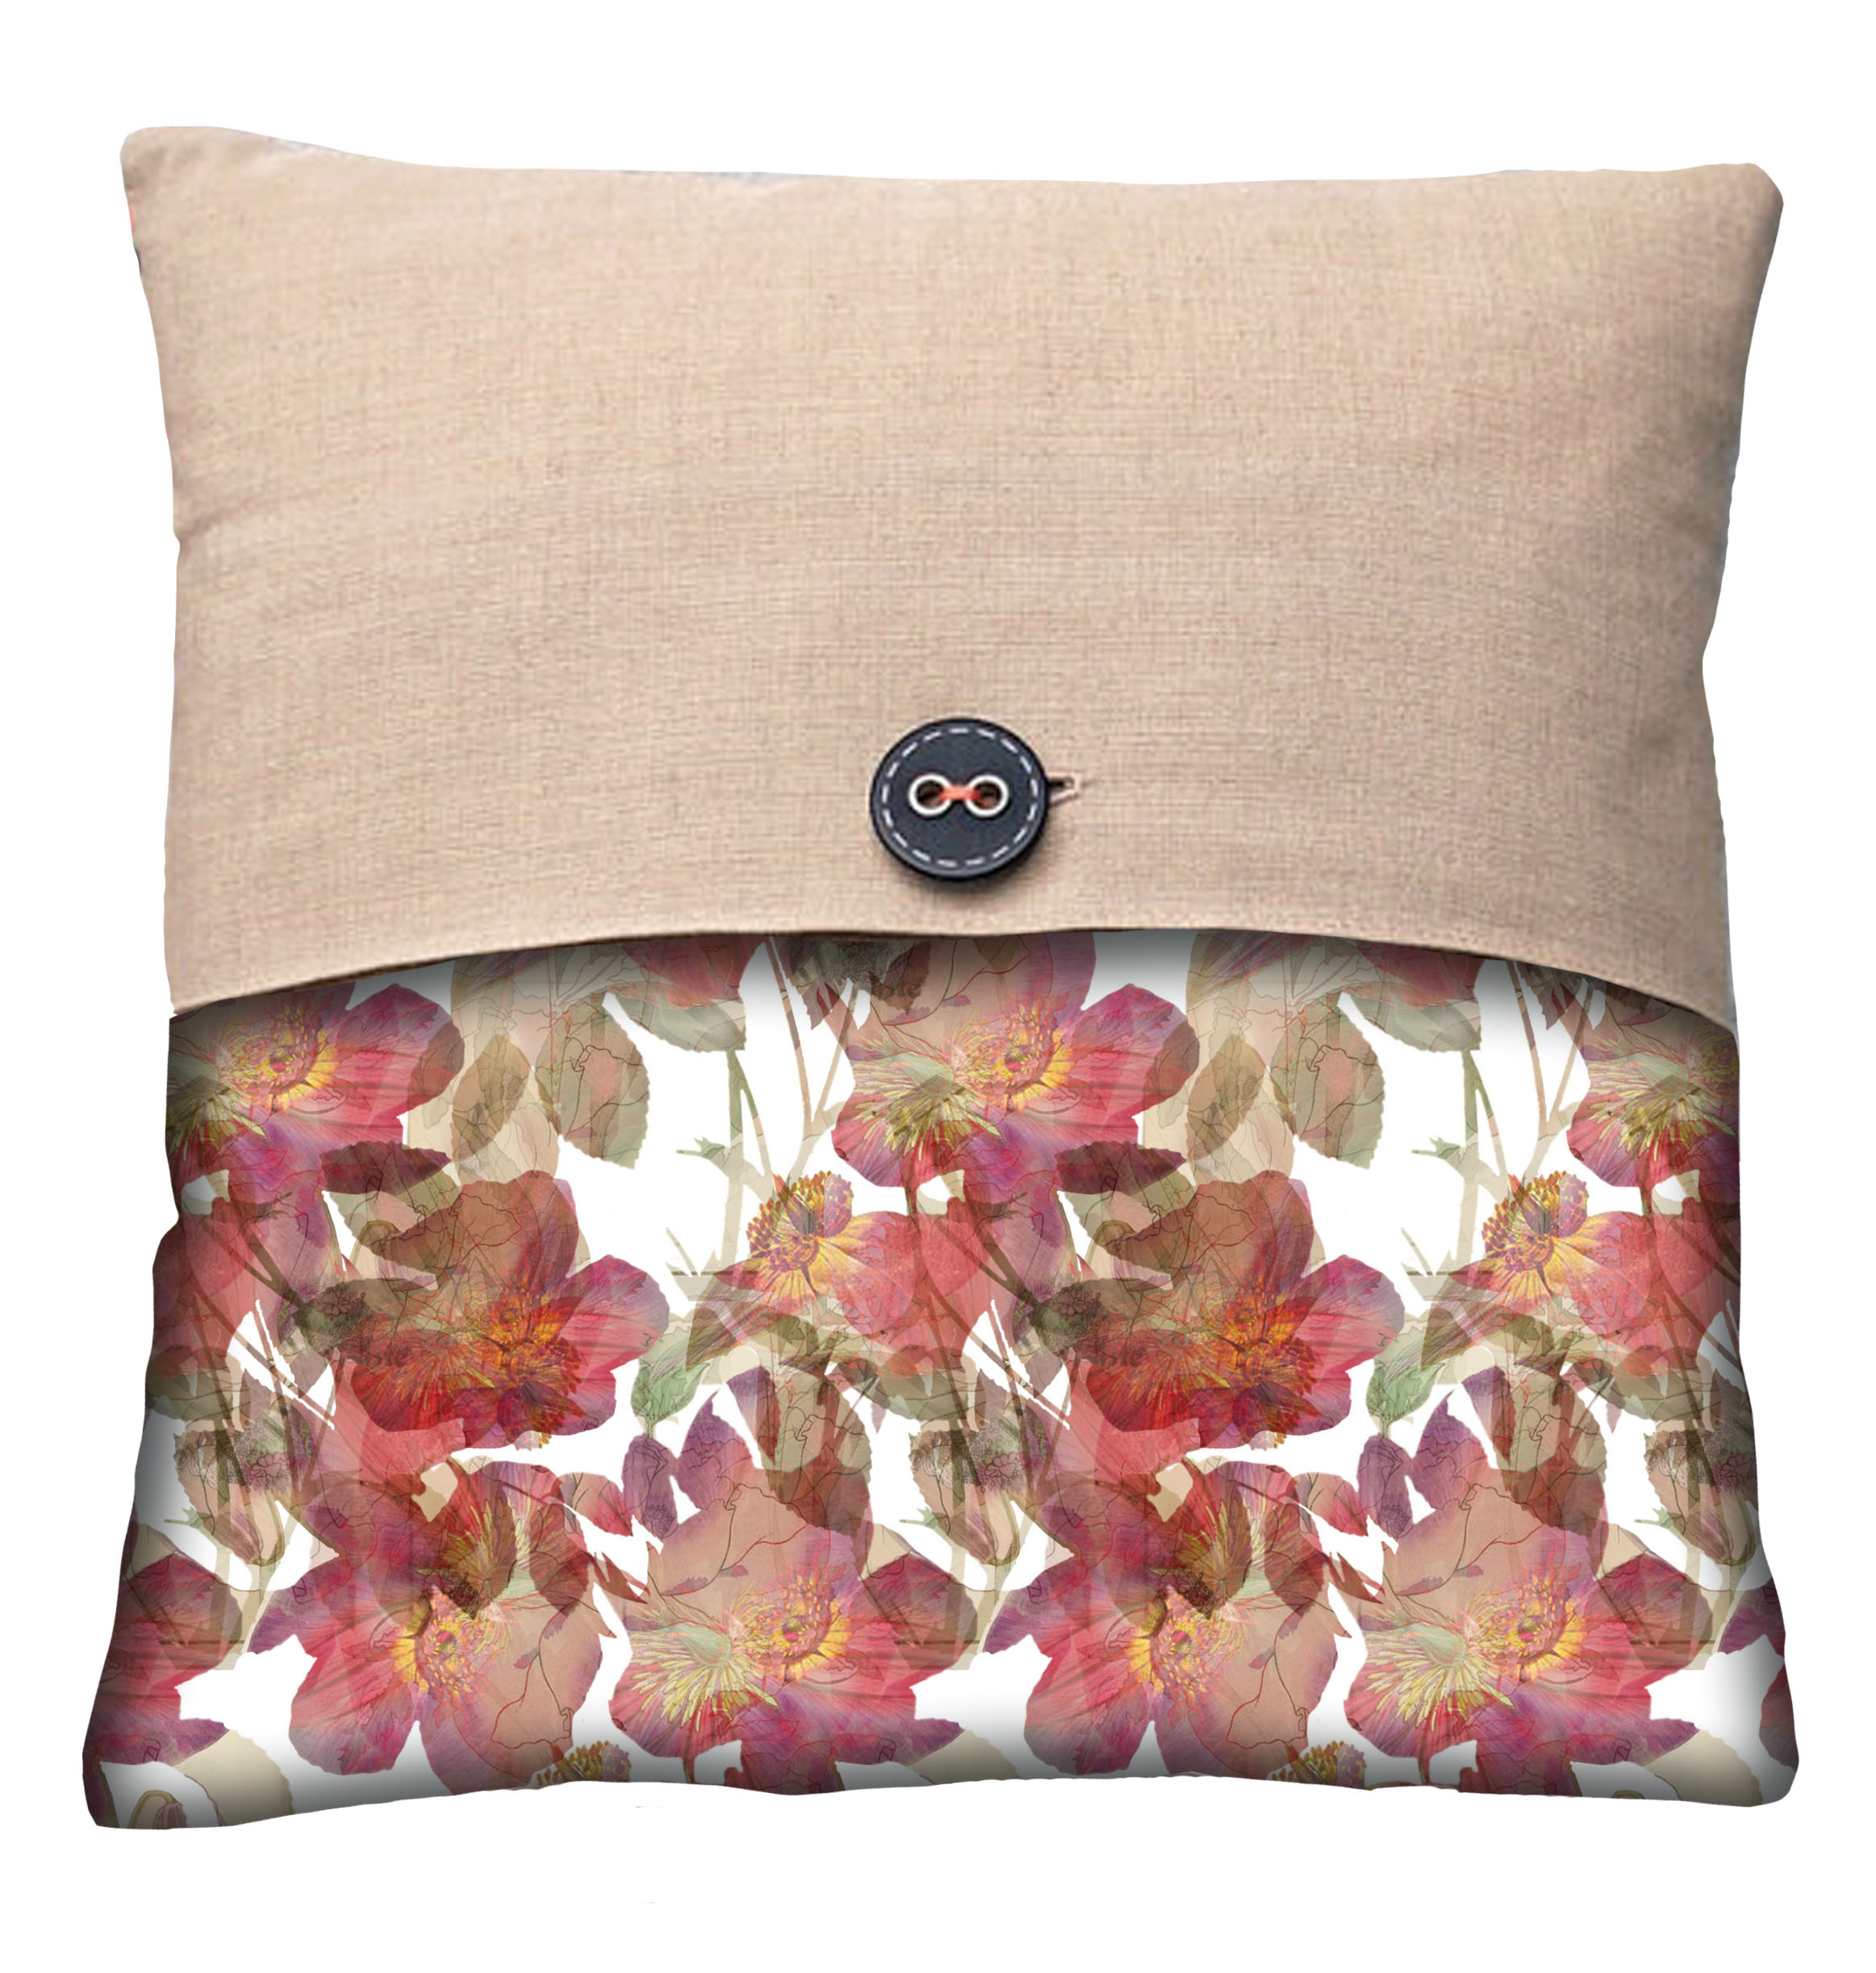 Floral Overlay pillow comp